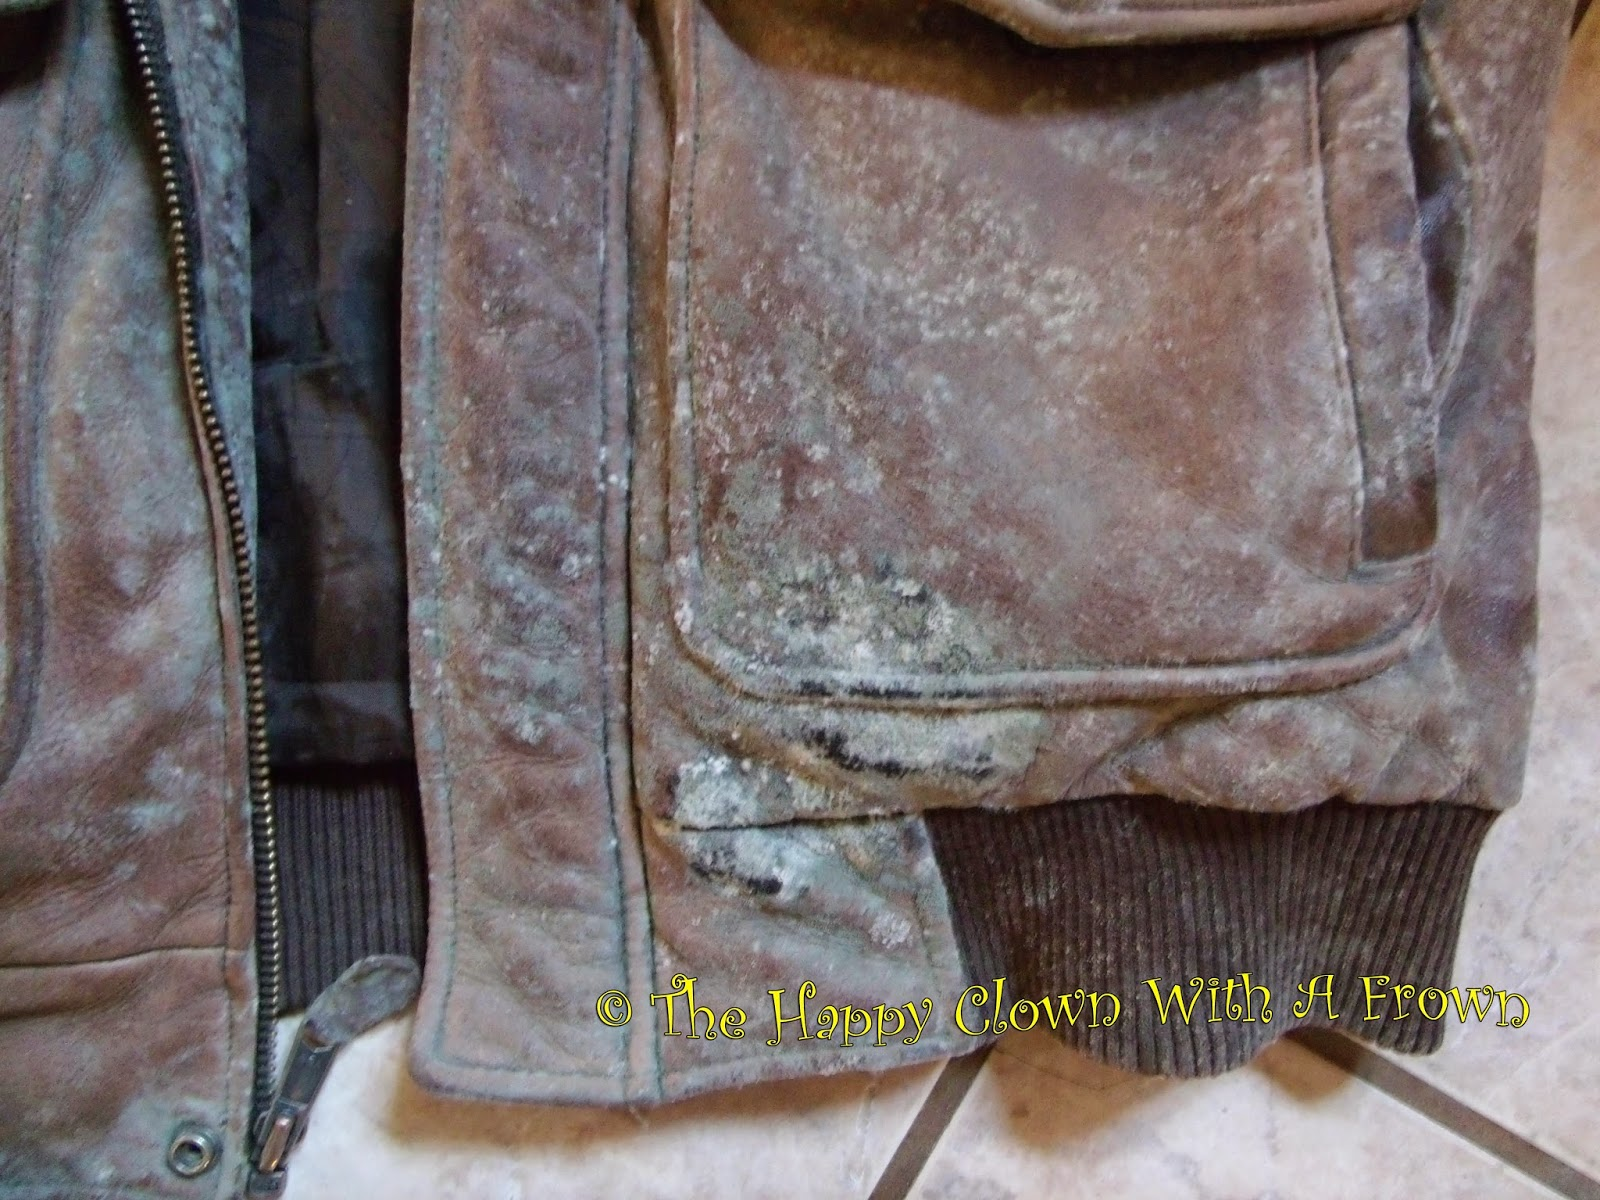 how to get pen off leather coat